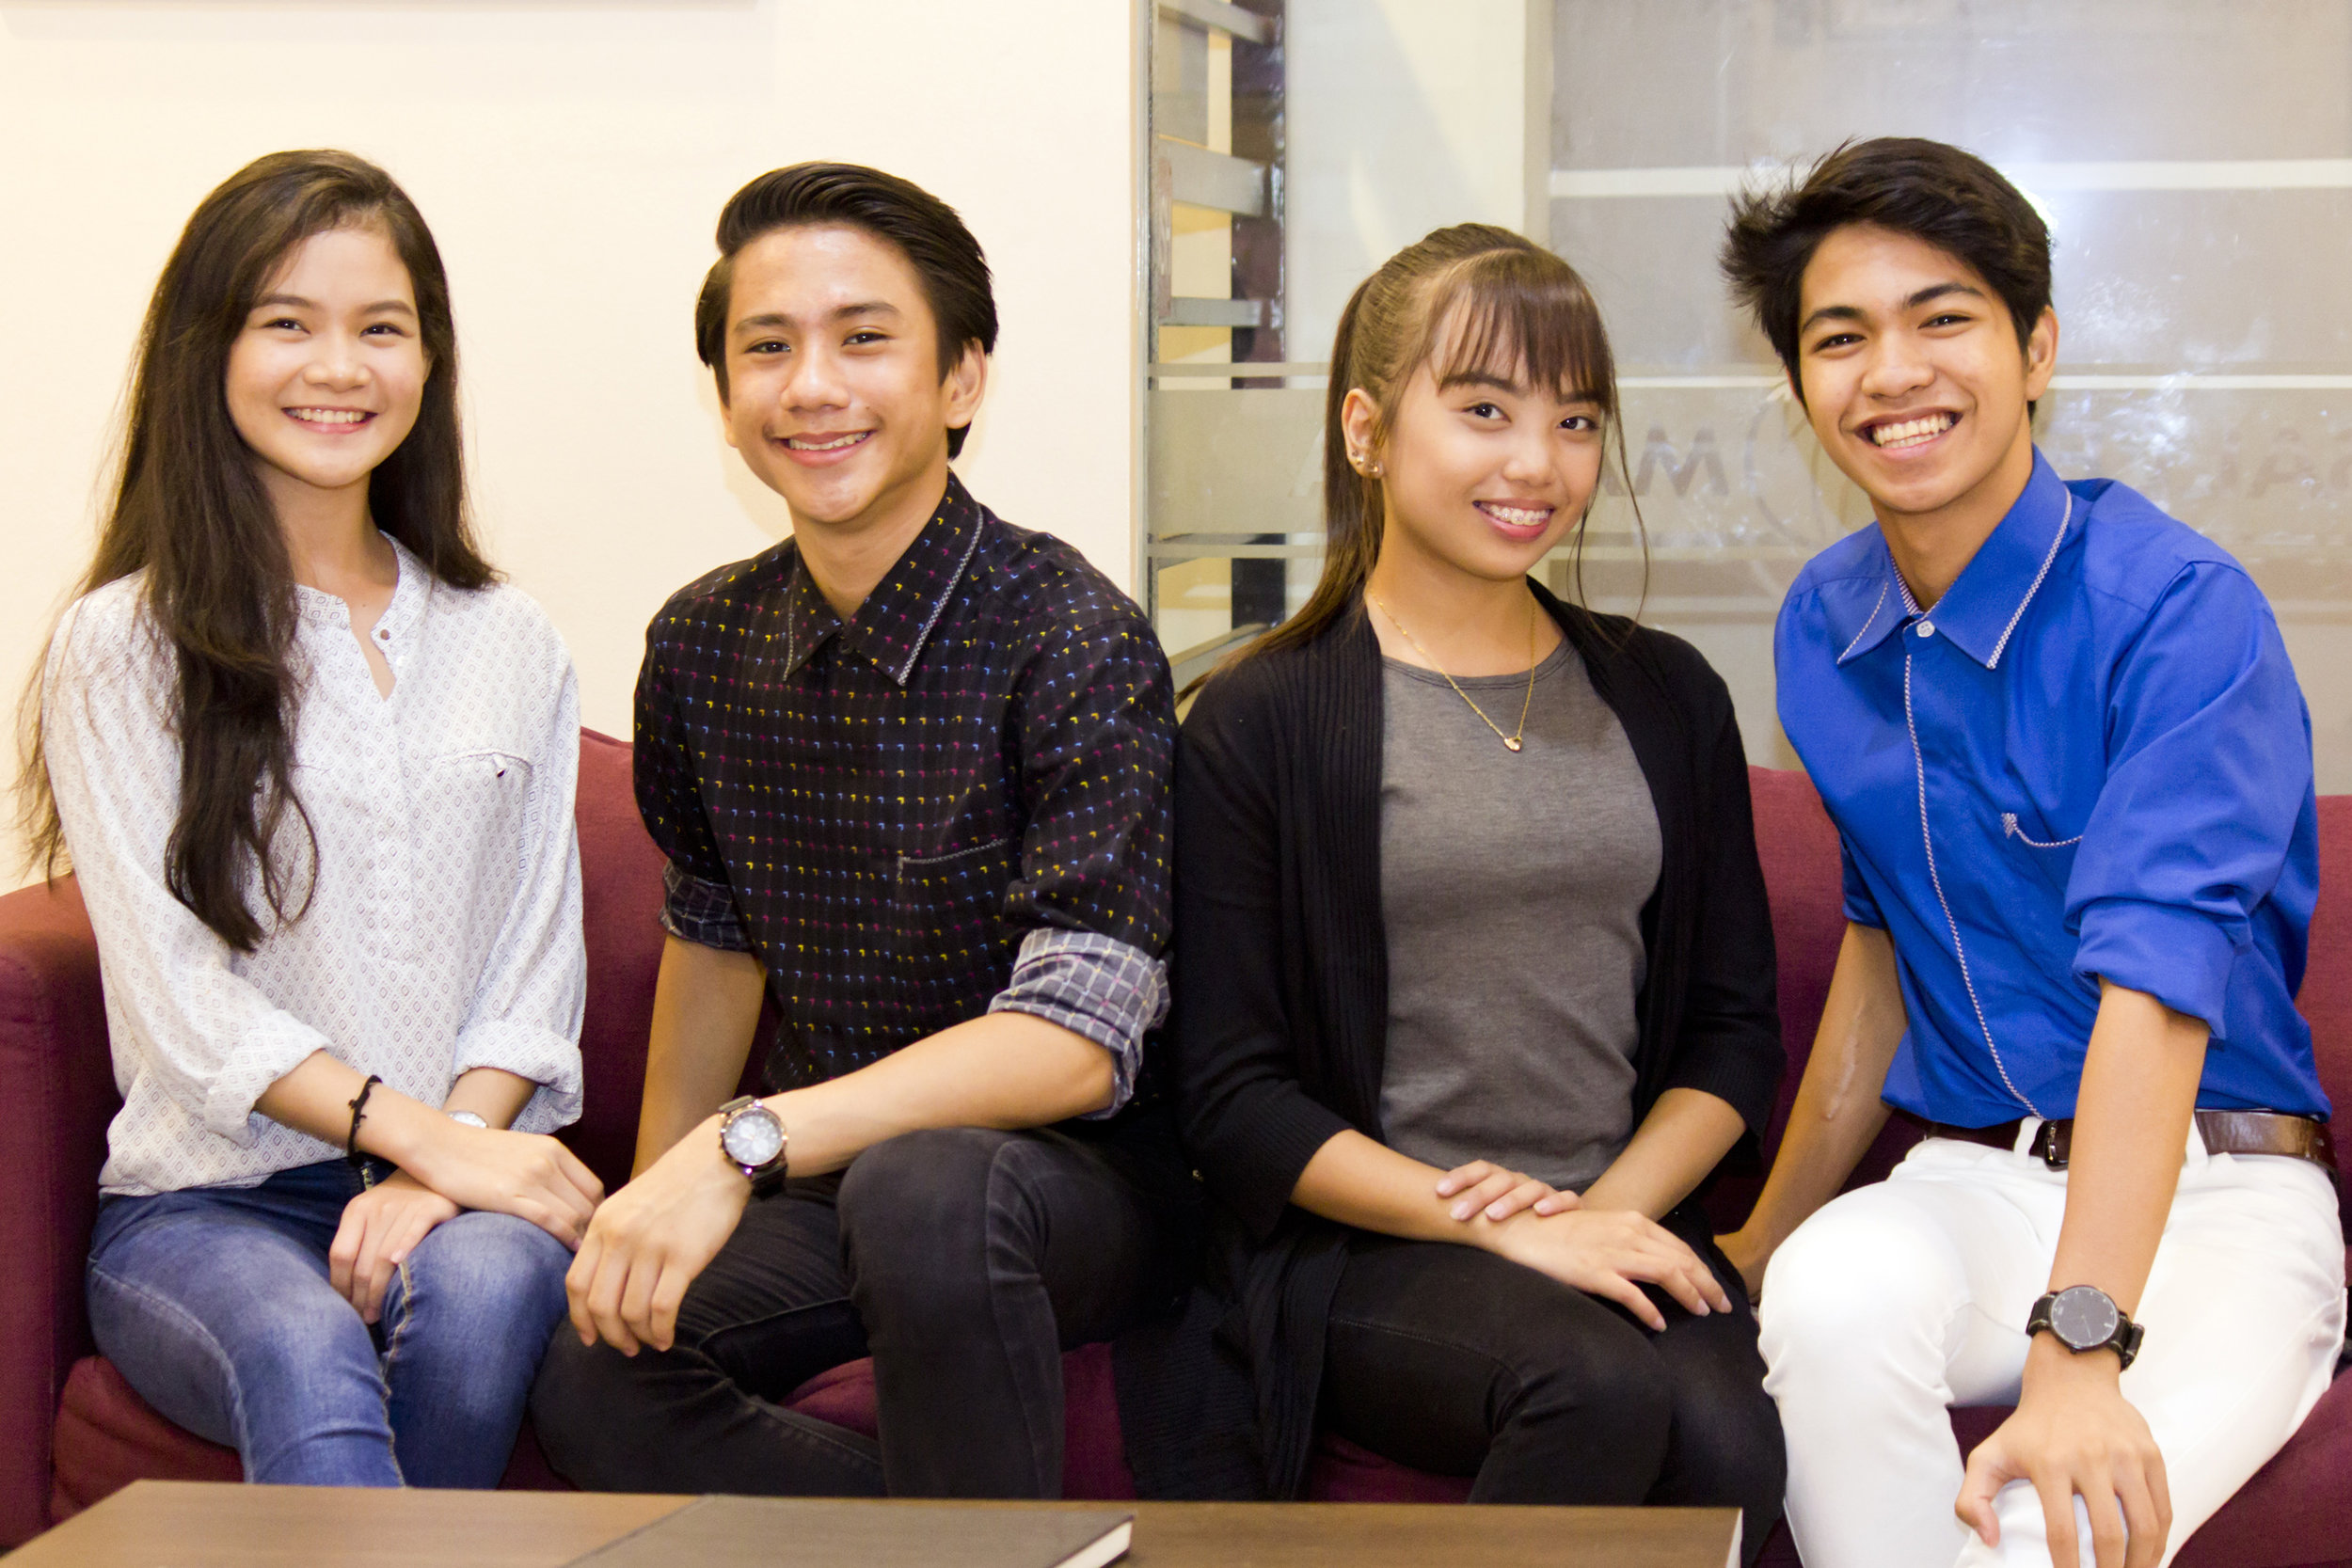 Shaira, Brian, Lyssa and Alvin get to share their stories of competing in Bangkok in a group interview. Photo by Jimmy Villanueva